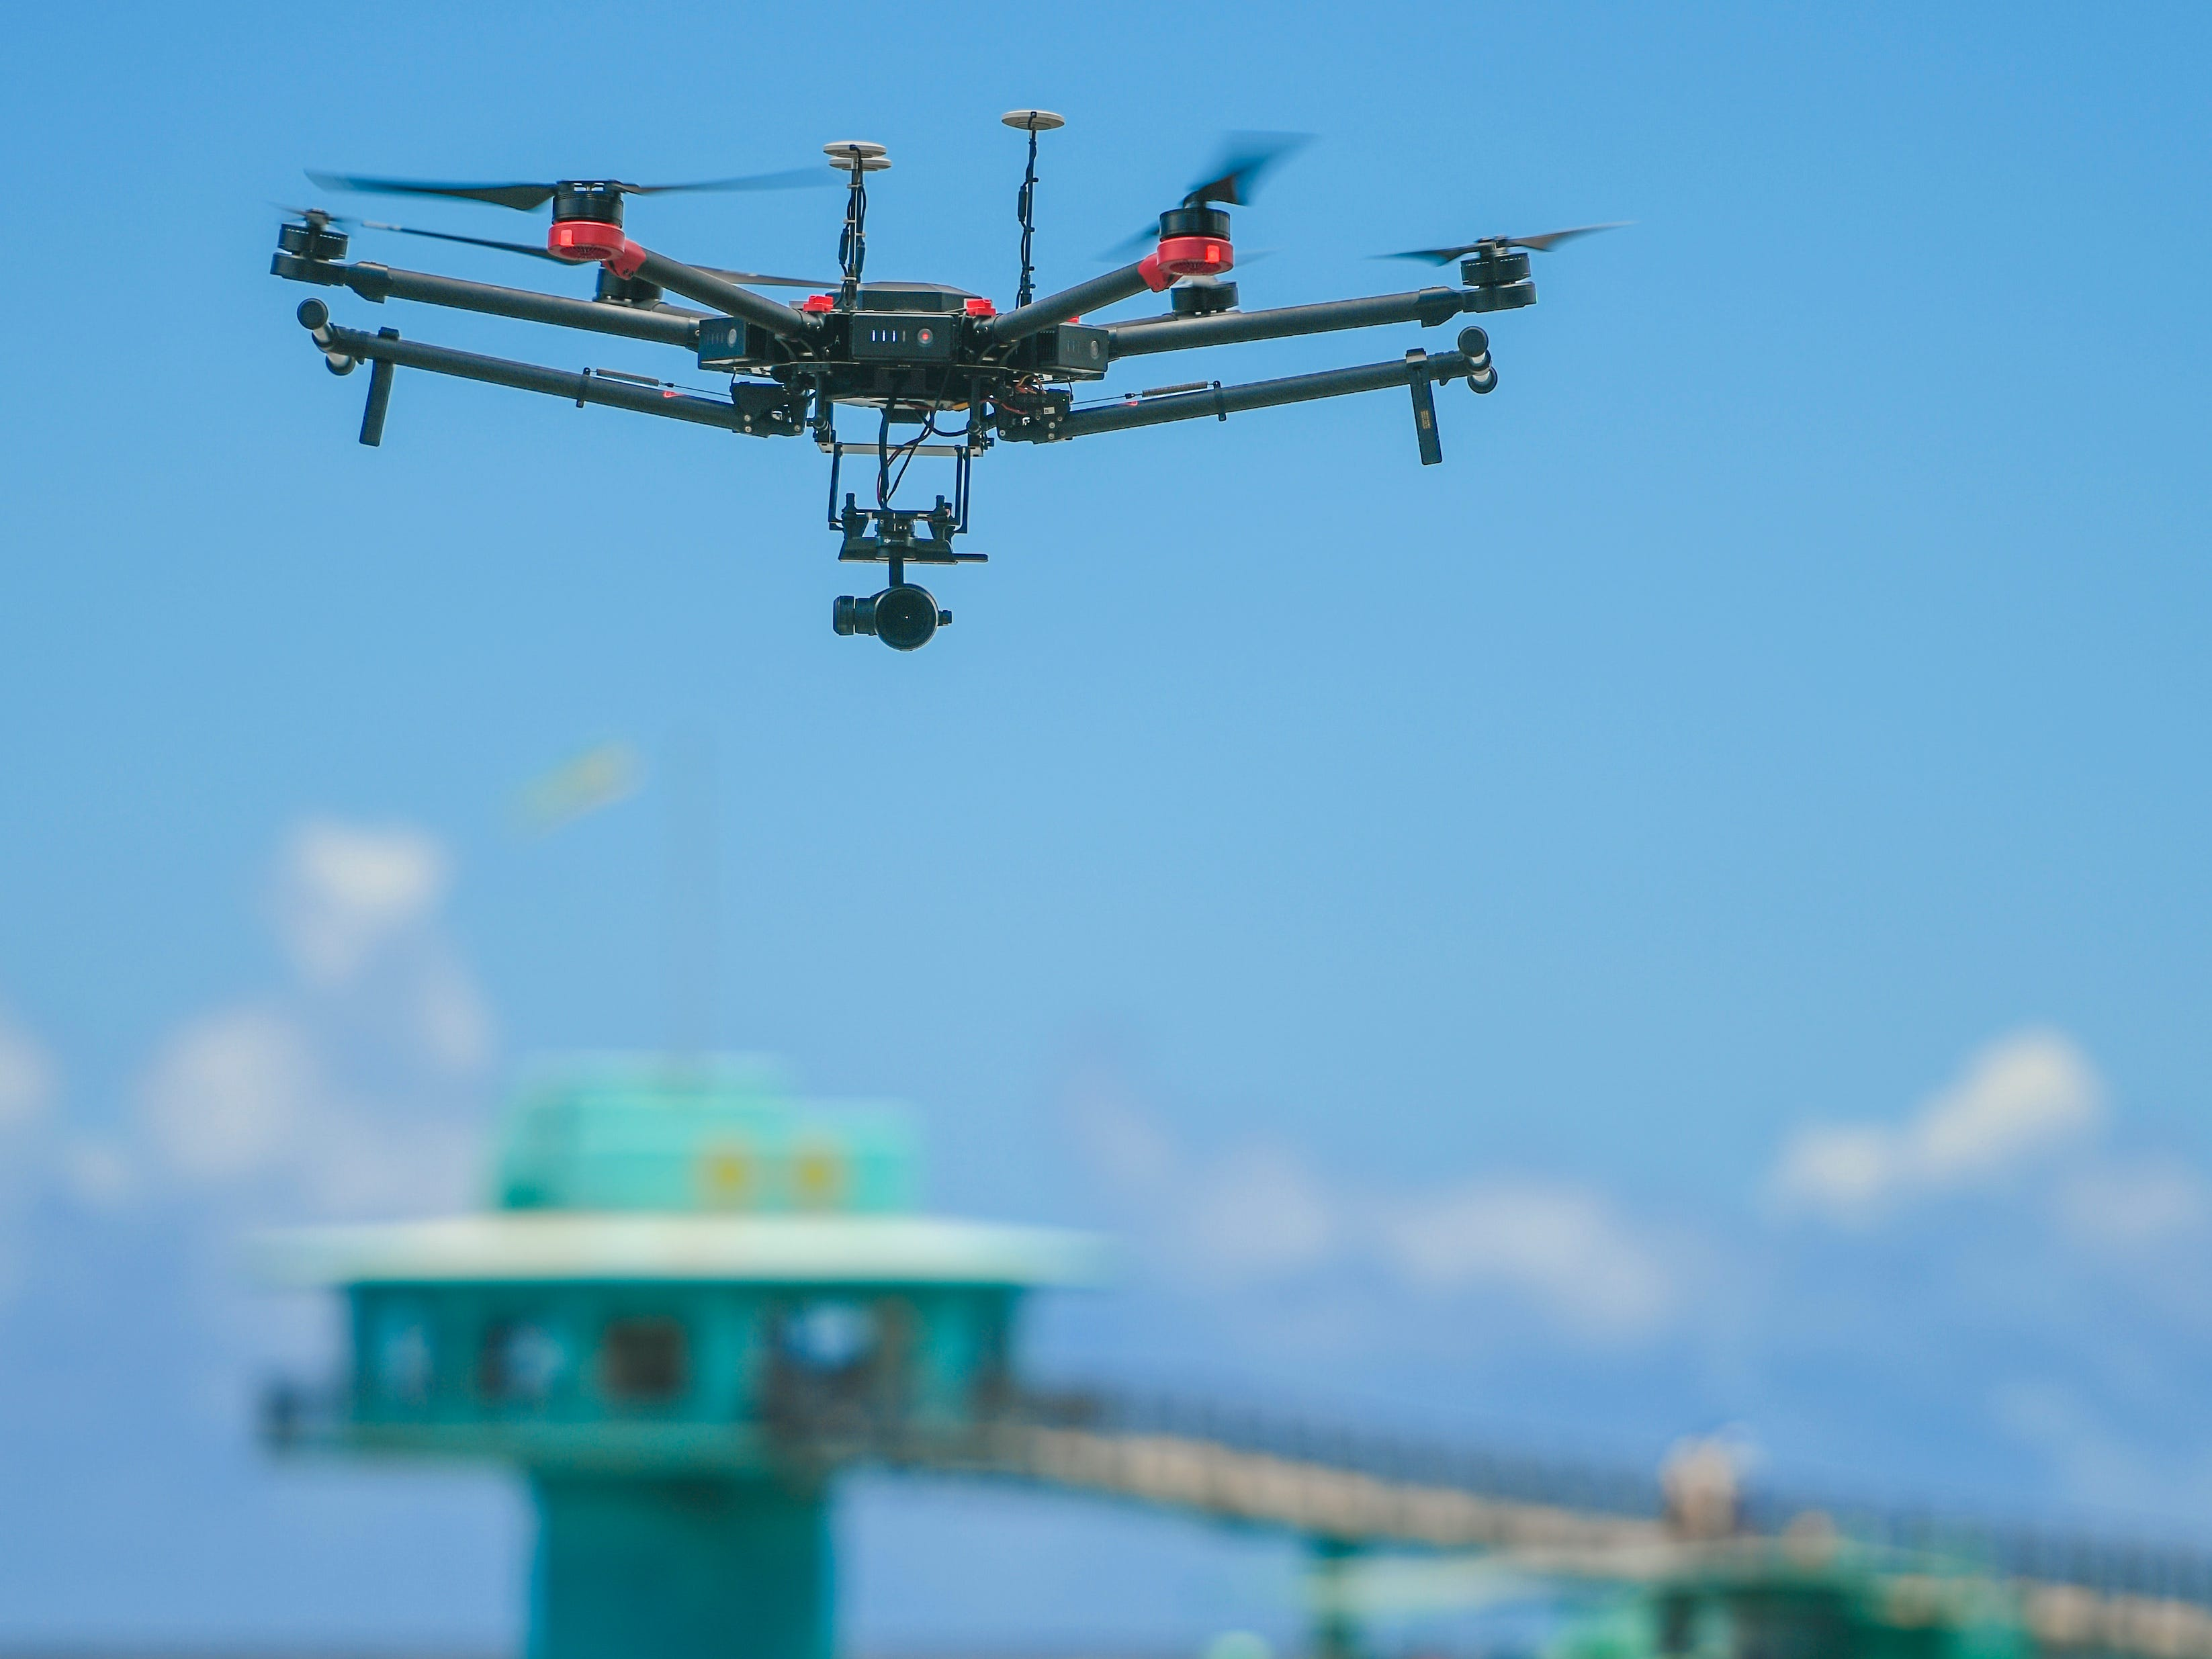 A NASA unmanned aerial vehicle hovers above the water off Tepungan Beach Park, near Fisheye Marine Park in Piti, on Wednesday, May 15, 2019. The University of Guam's Pacific Islands Climate Adaptation Science Center has been work in tandem with a scientific research team from NASA to use the drone, and Fluid Lensing technology, to map the underwater coral reef of Piti and Tumon, from the air.